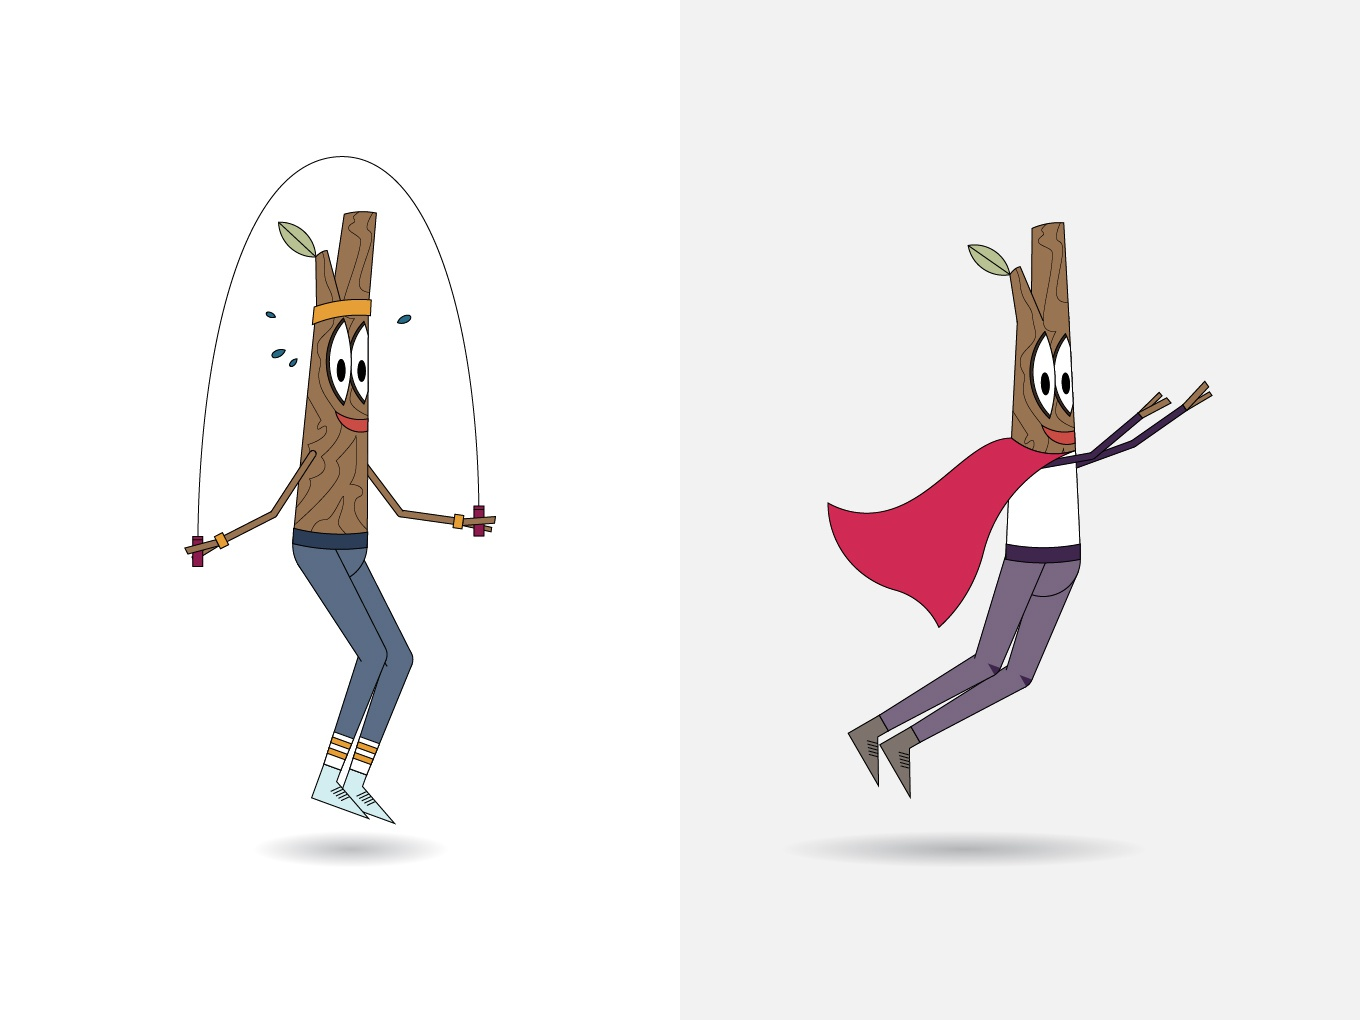 Spry Sprig Concept 2 concept logo superhero jumprope active tree branch stick twig character iconography icon illustration